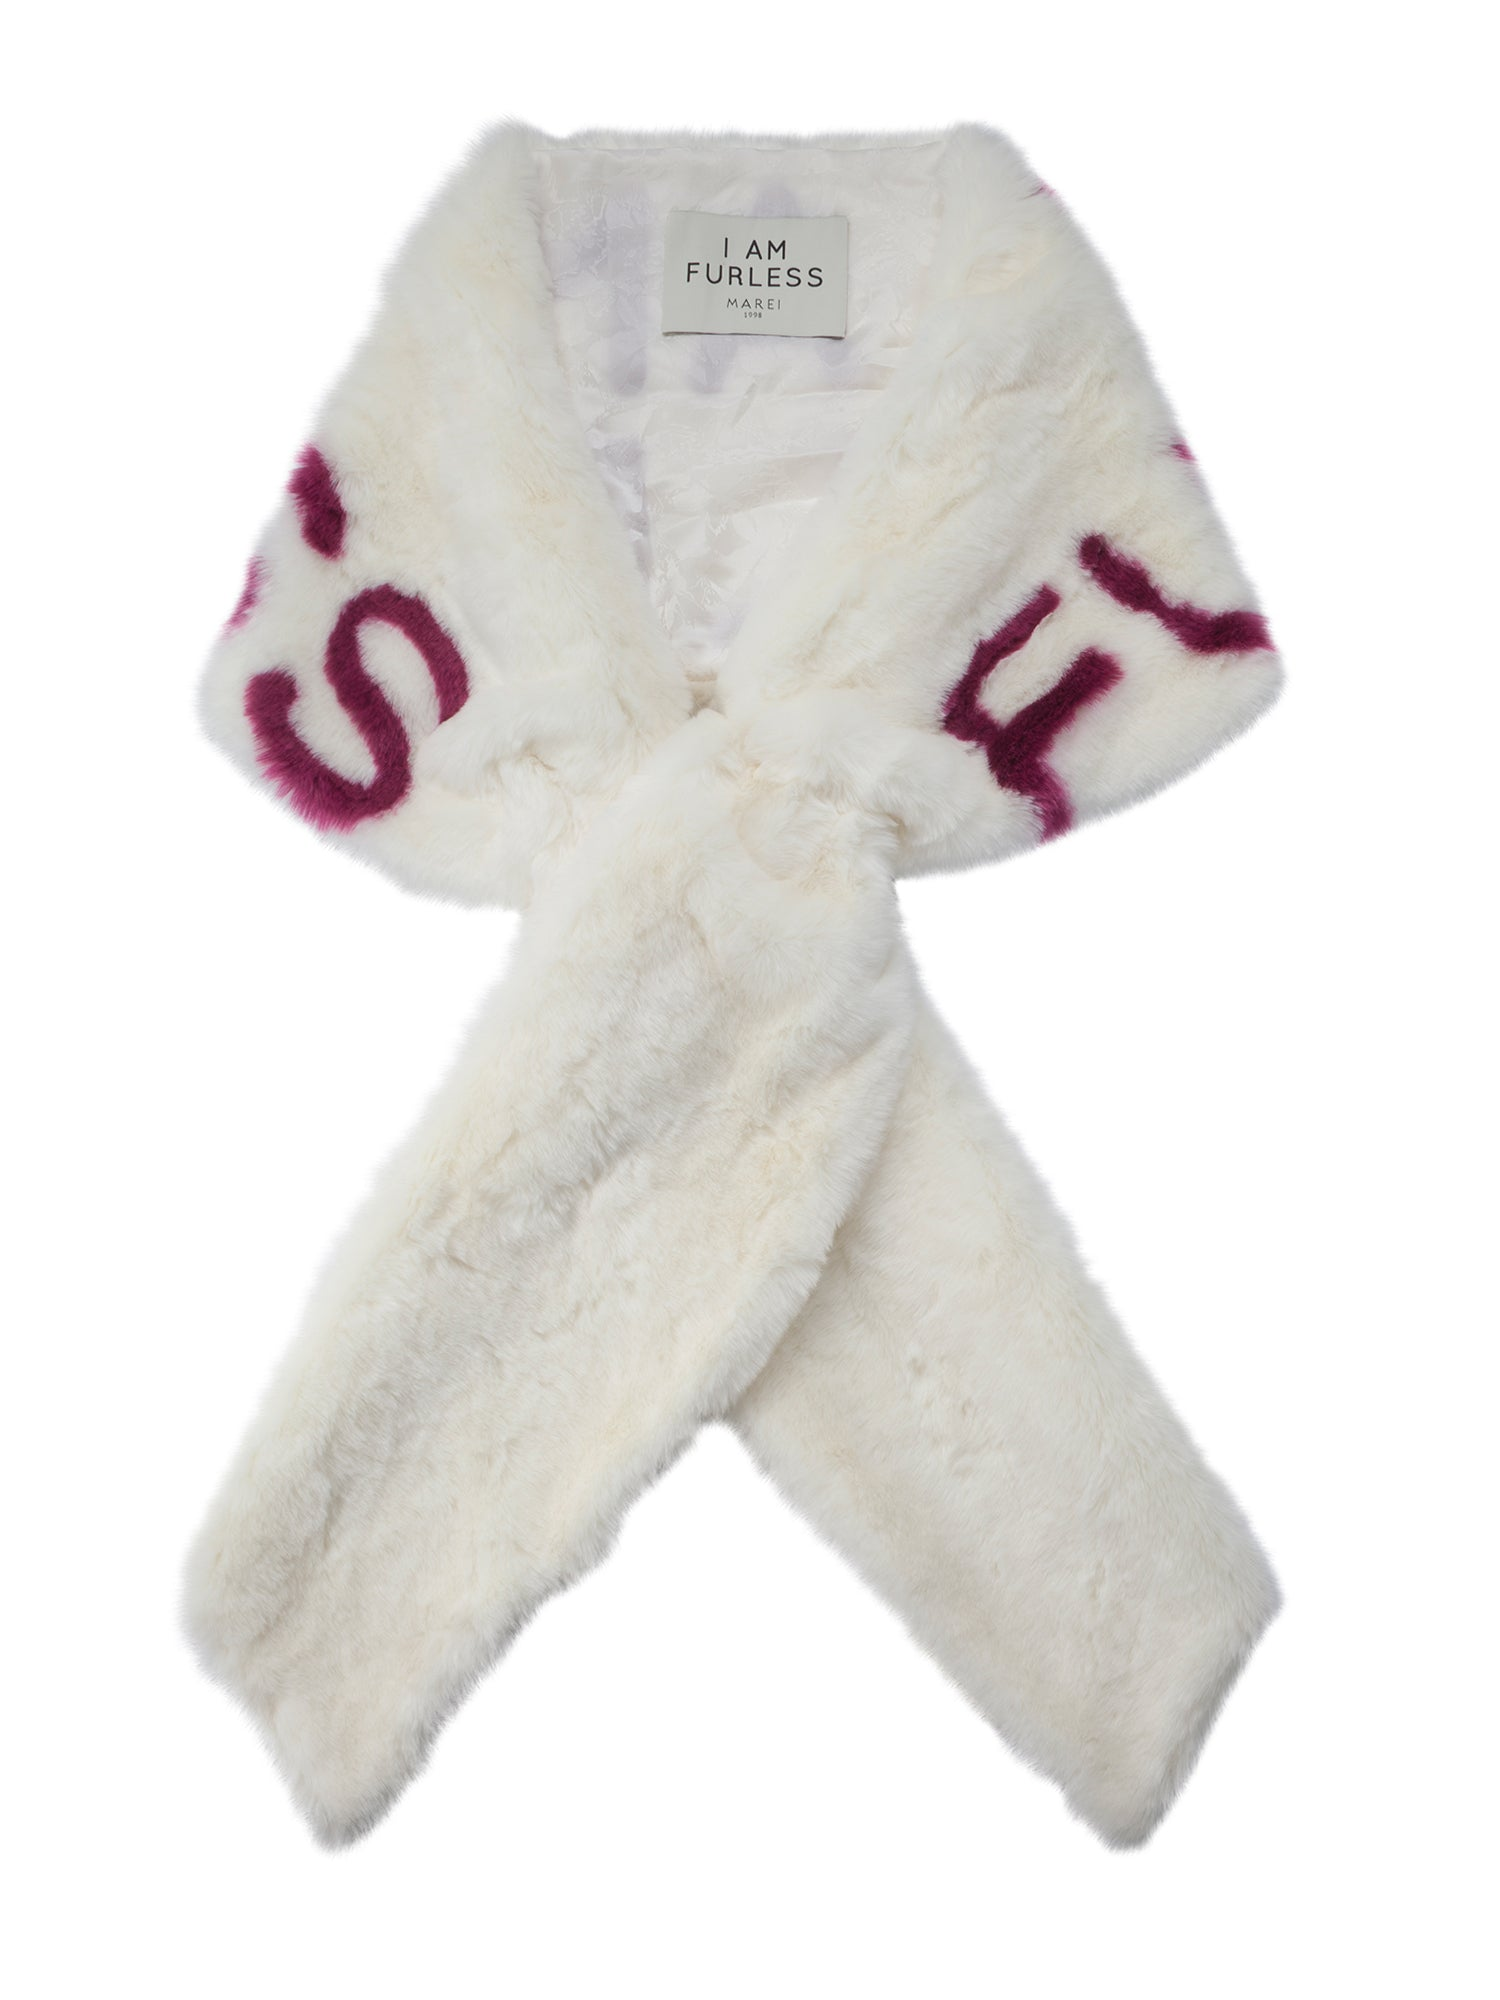 A Packshot Of Marei1998's Furless Faux Fur Stole In White Color. Exclusively Designed As Part Of Marei1998's Furless Label, This Stole Is A Bold Statement Piece. Cut In A Wide Silhouette, It Is Crafted From Plush Faux Fur In White Color, Featuring Jacquard Design In Bold Raspberry.